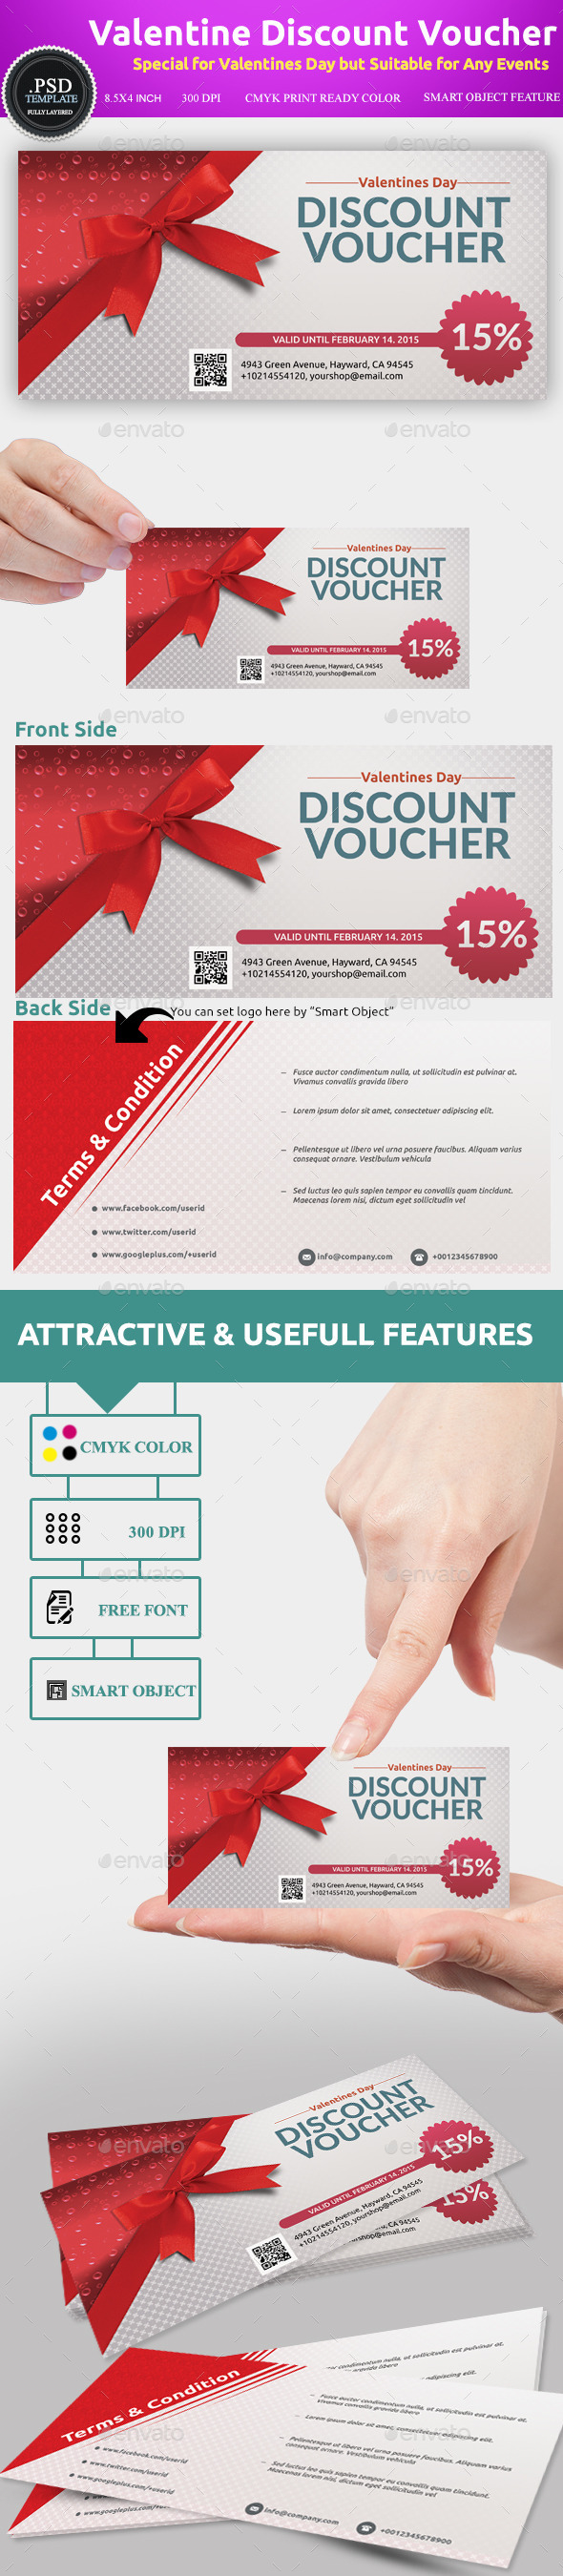 Fun Voucher Template Intelligence Research Specialist Sample Resume 590 Fun  Voucher Templatehtml  Fun Voucher Template